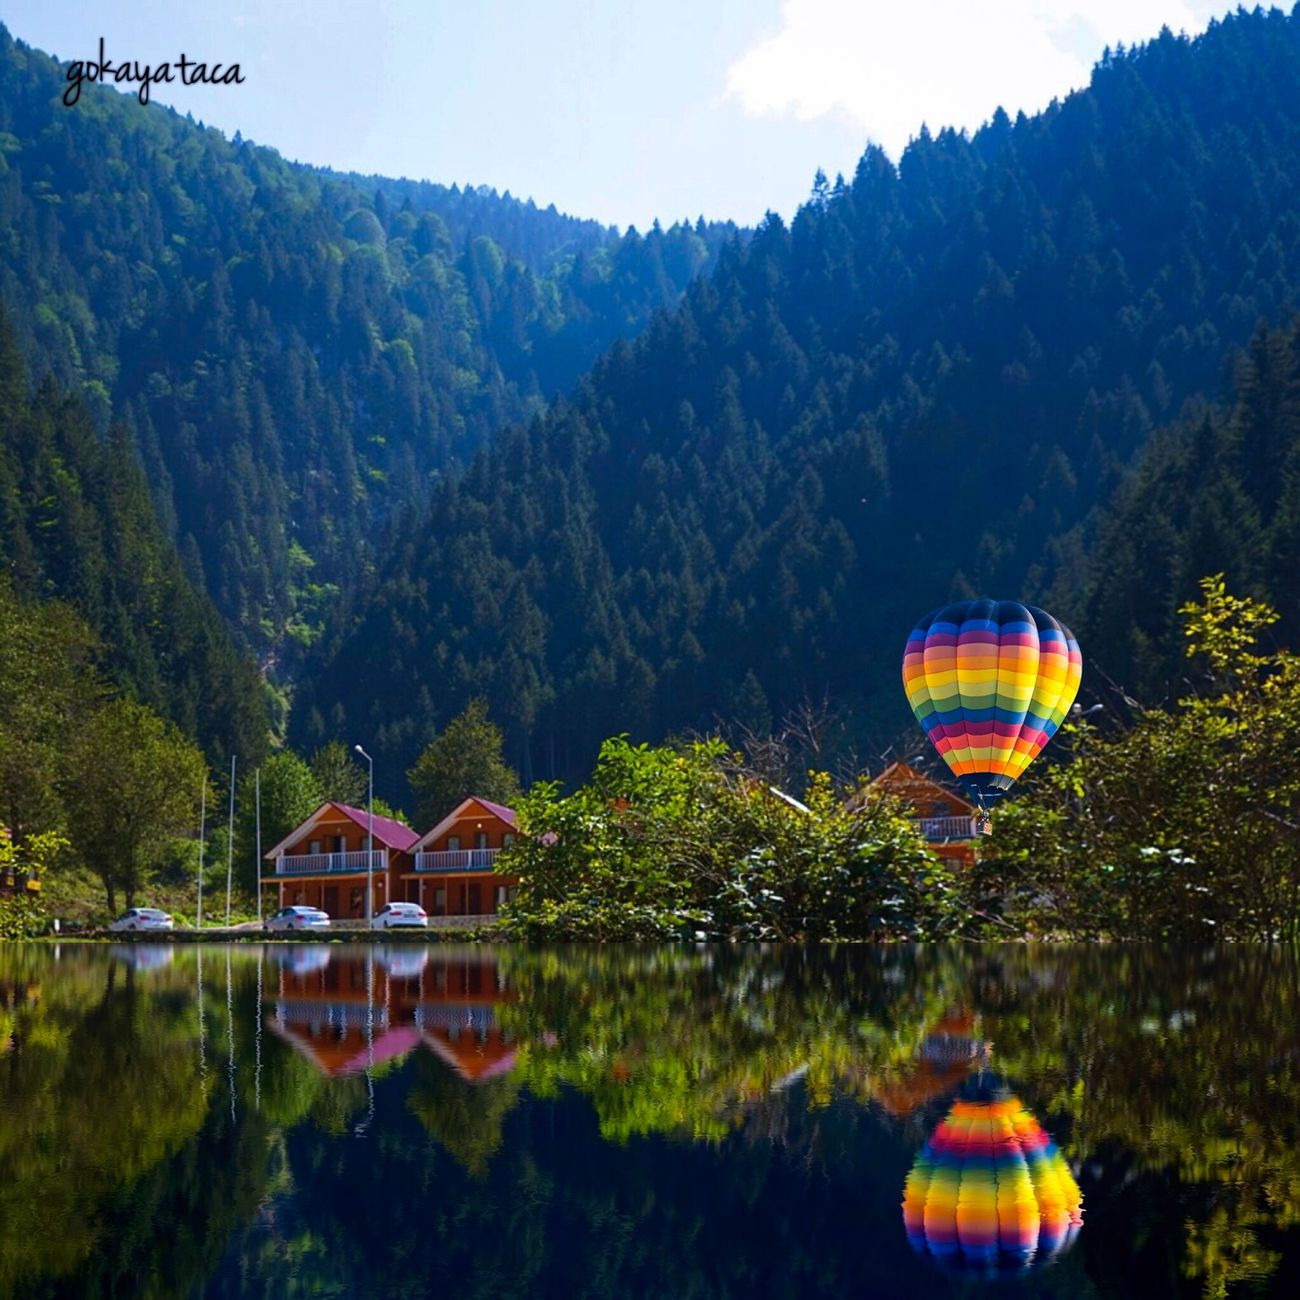 Reflection in blacksea Karadeniz Reflection Reflection_collection TreePorn Tree_collection  Enjoying Life Landscape_Collection Landscape